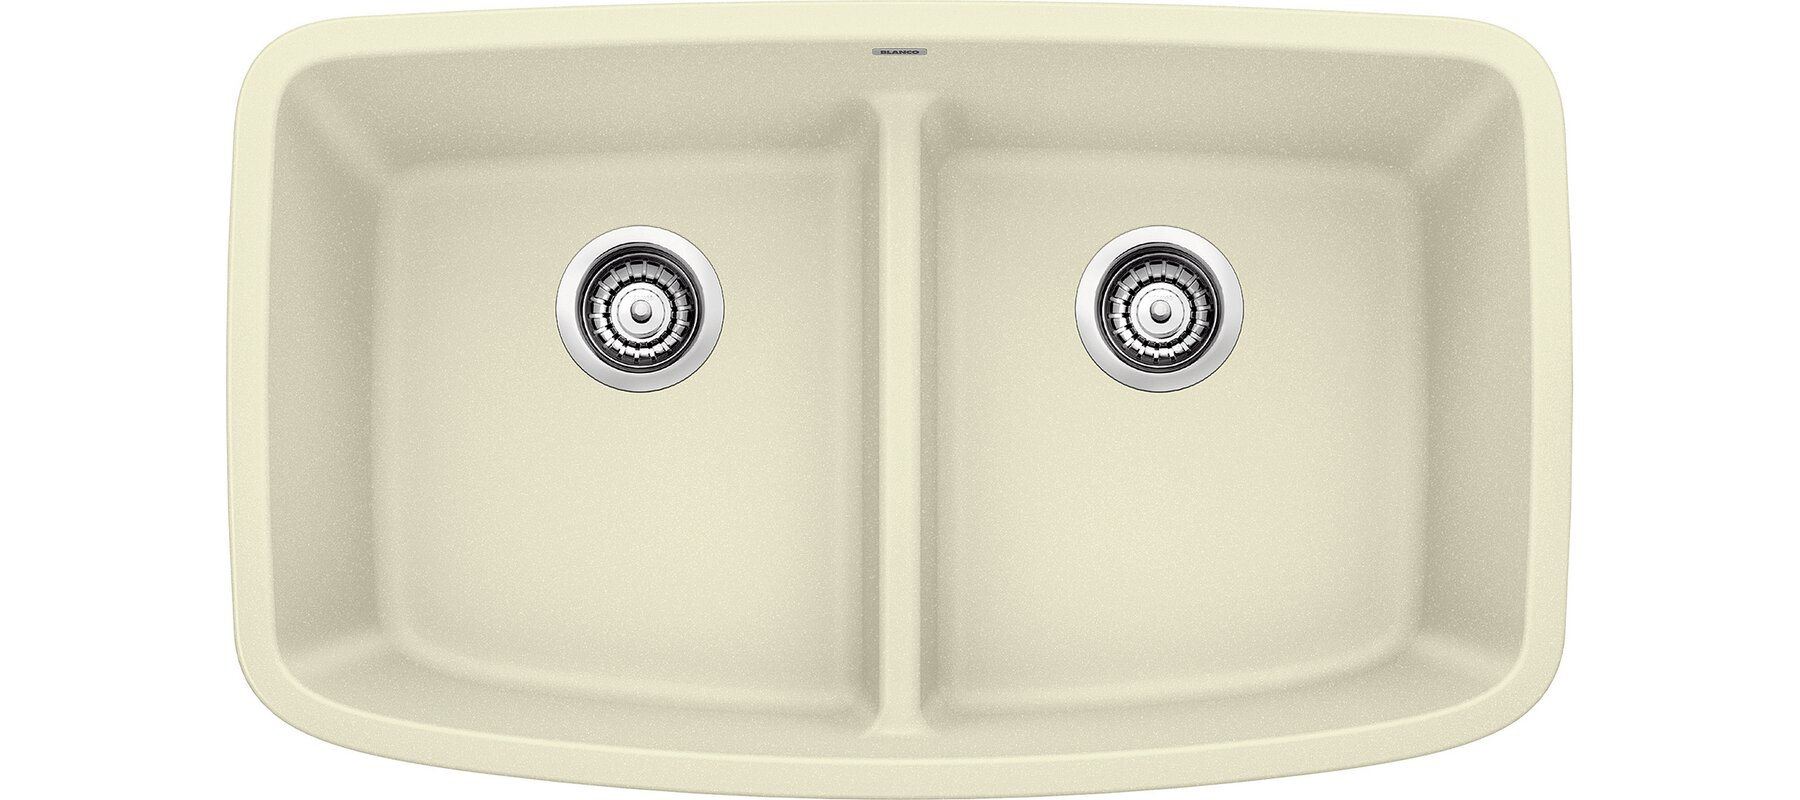 "Valea 32"" L  x  19"" W Double Basin Undermount Kitchen Sink"